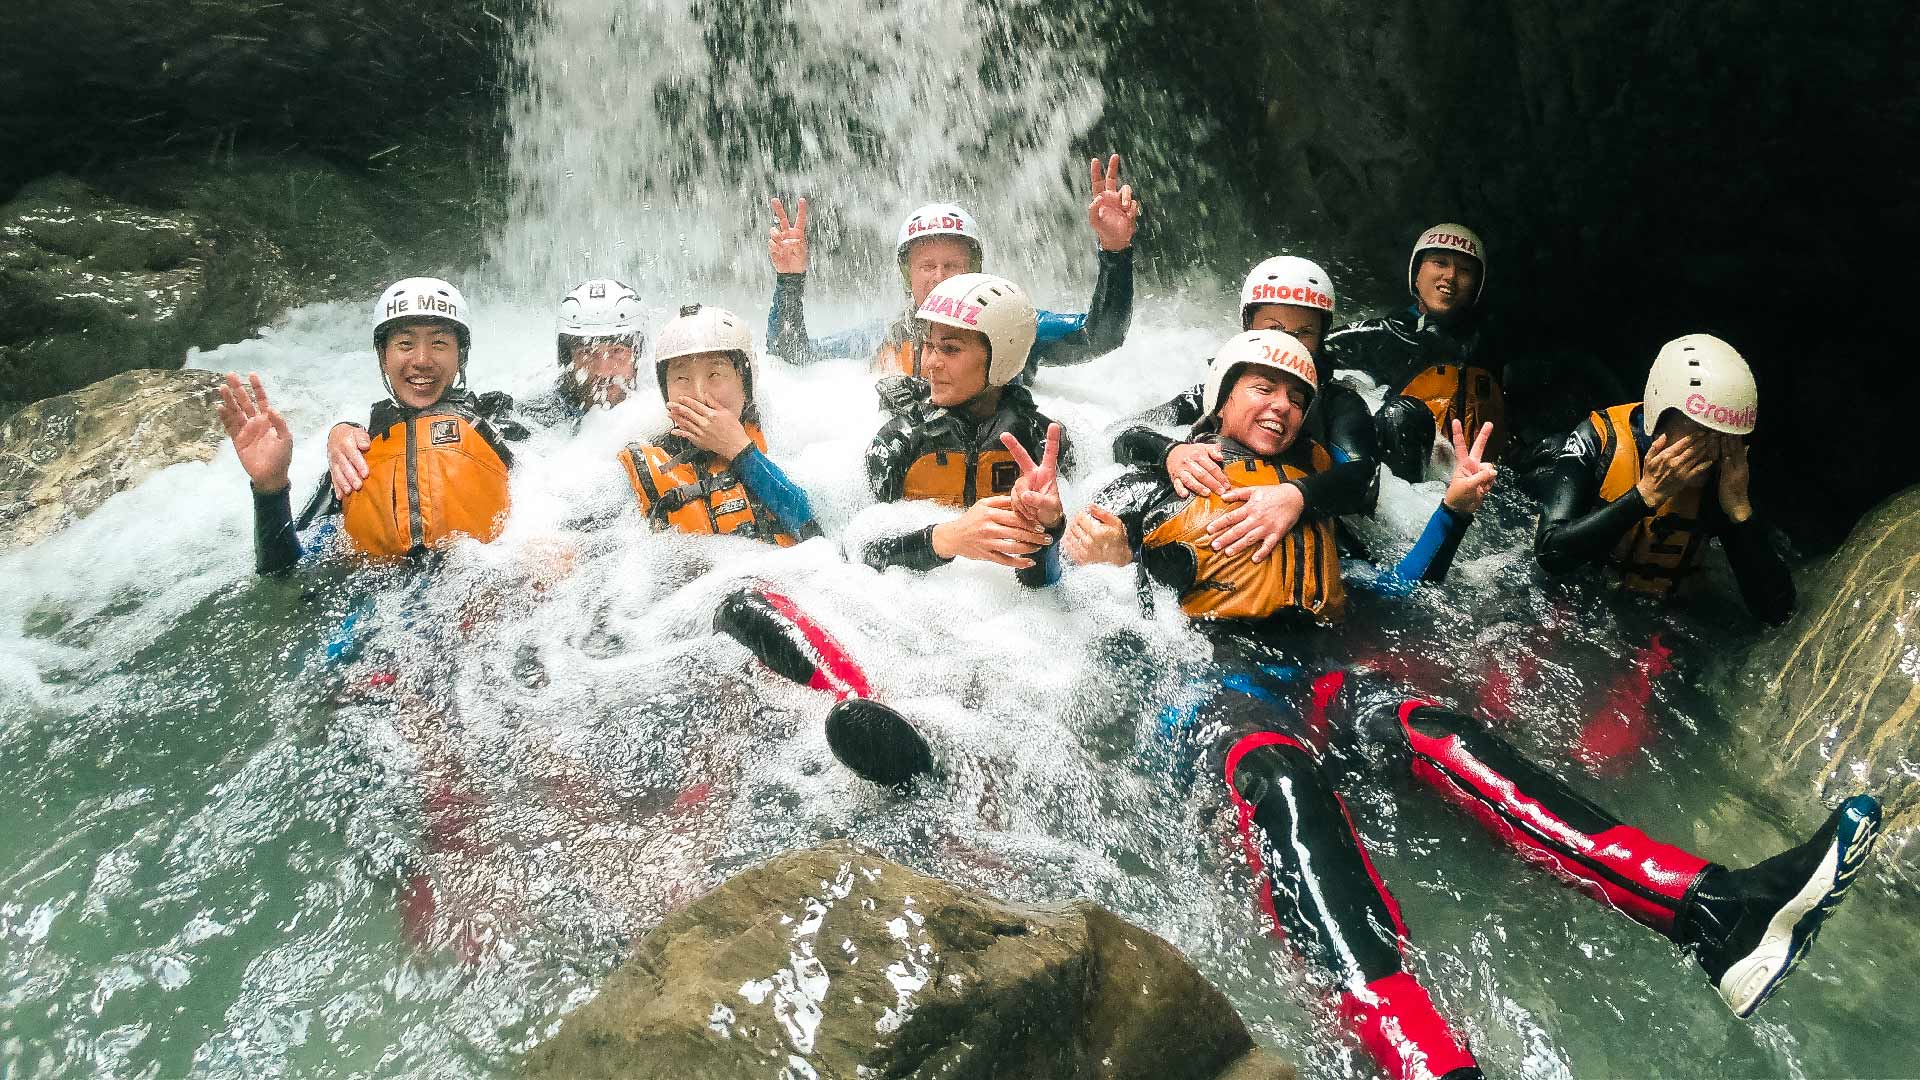 canyoning-outdoor-gruppenfoto-wasser